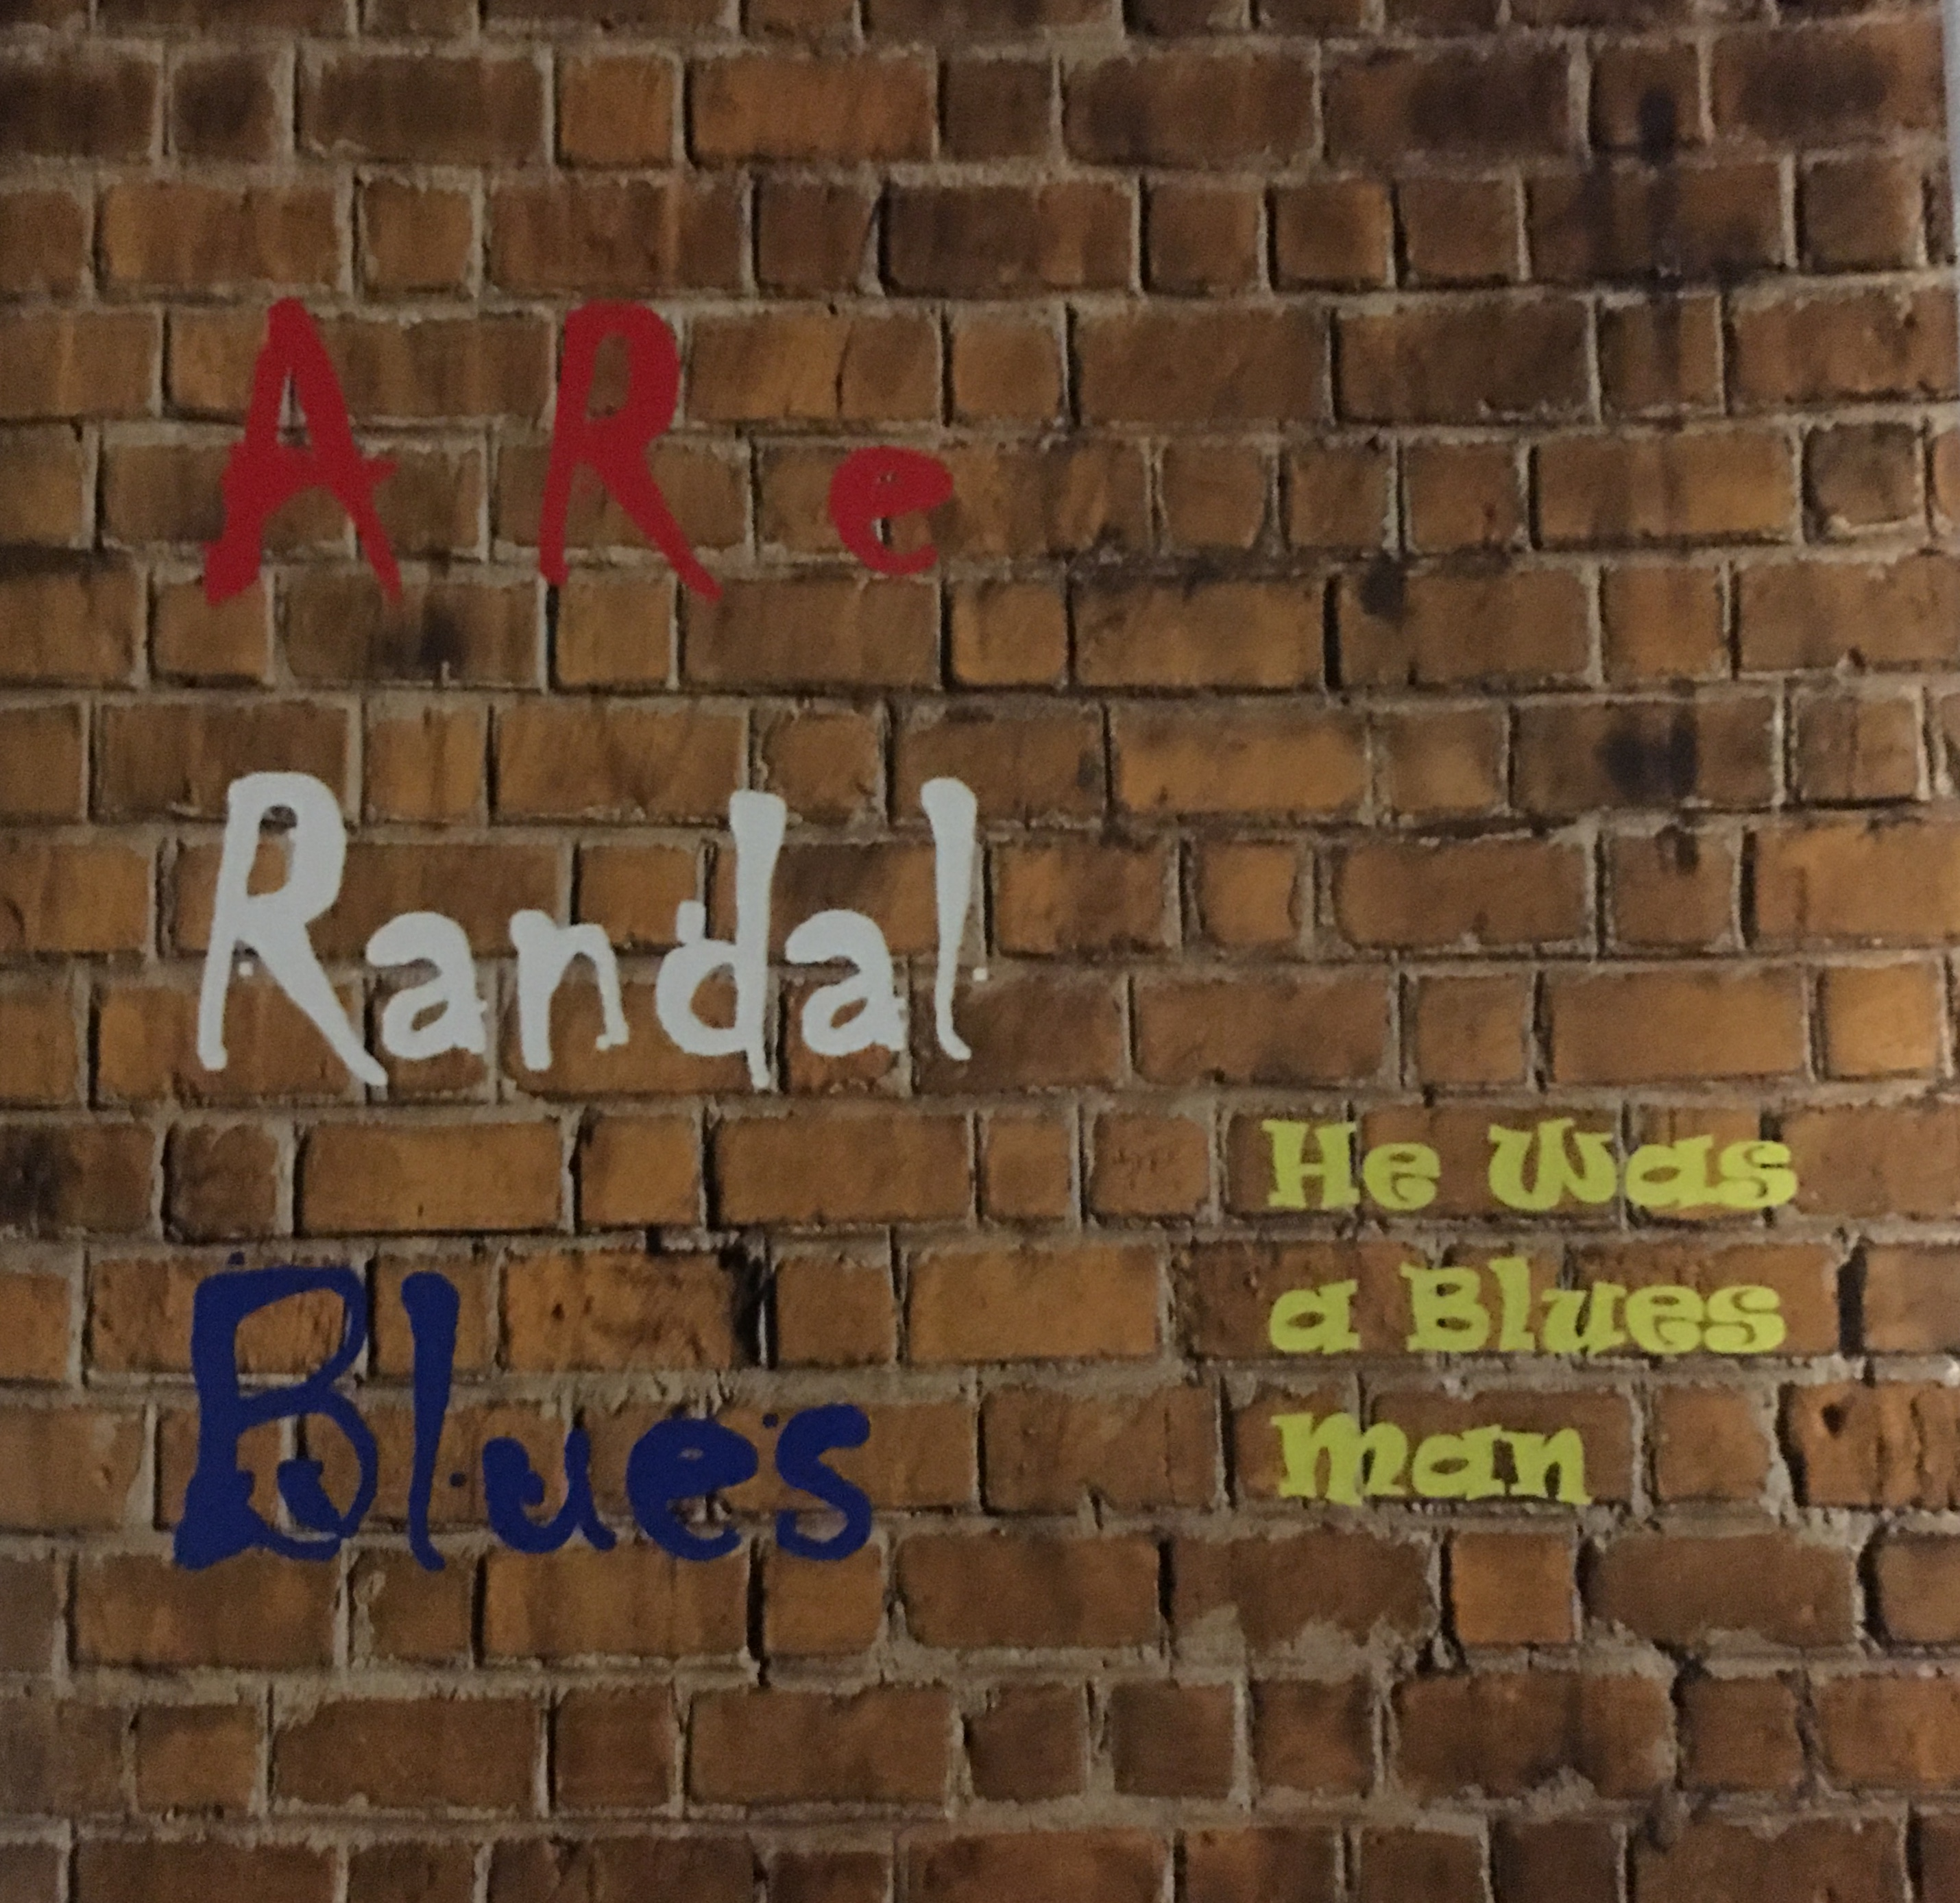 ARe Randal Blues